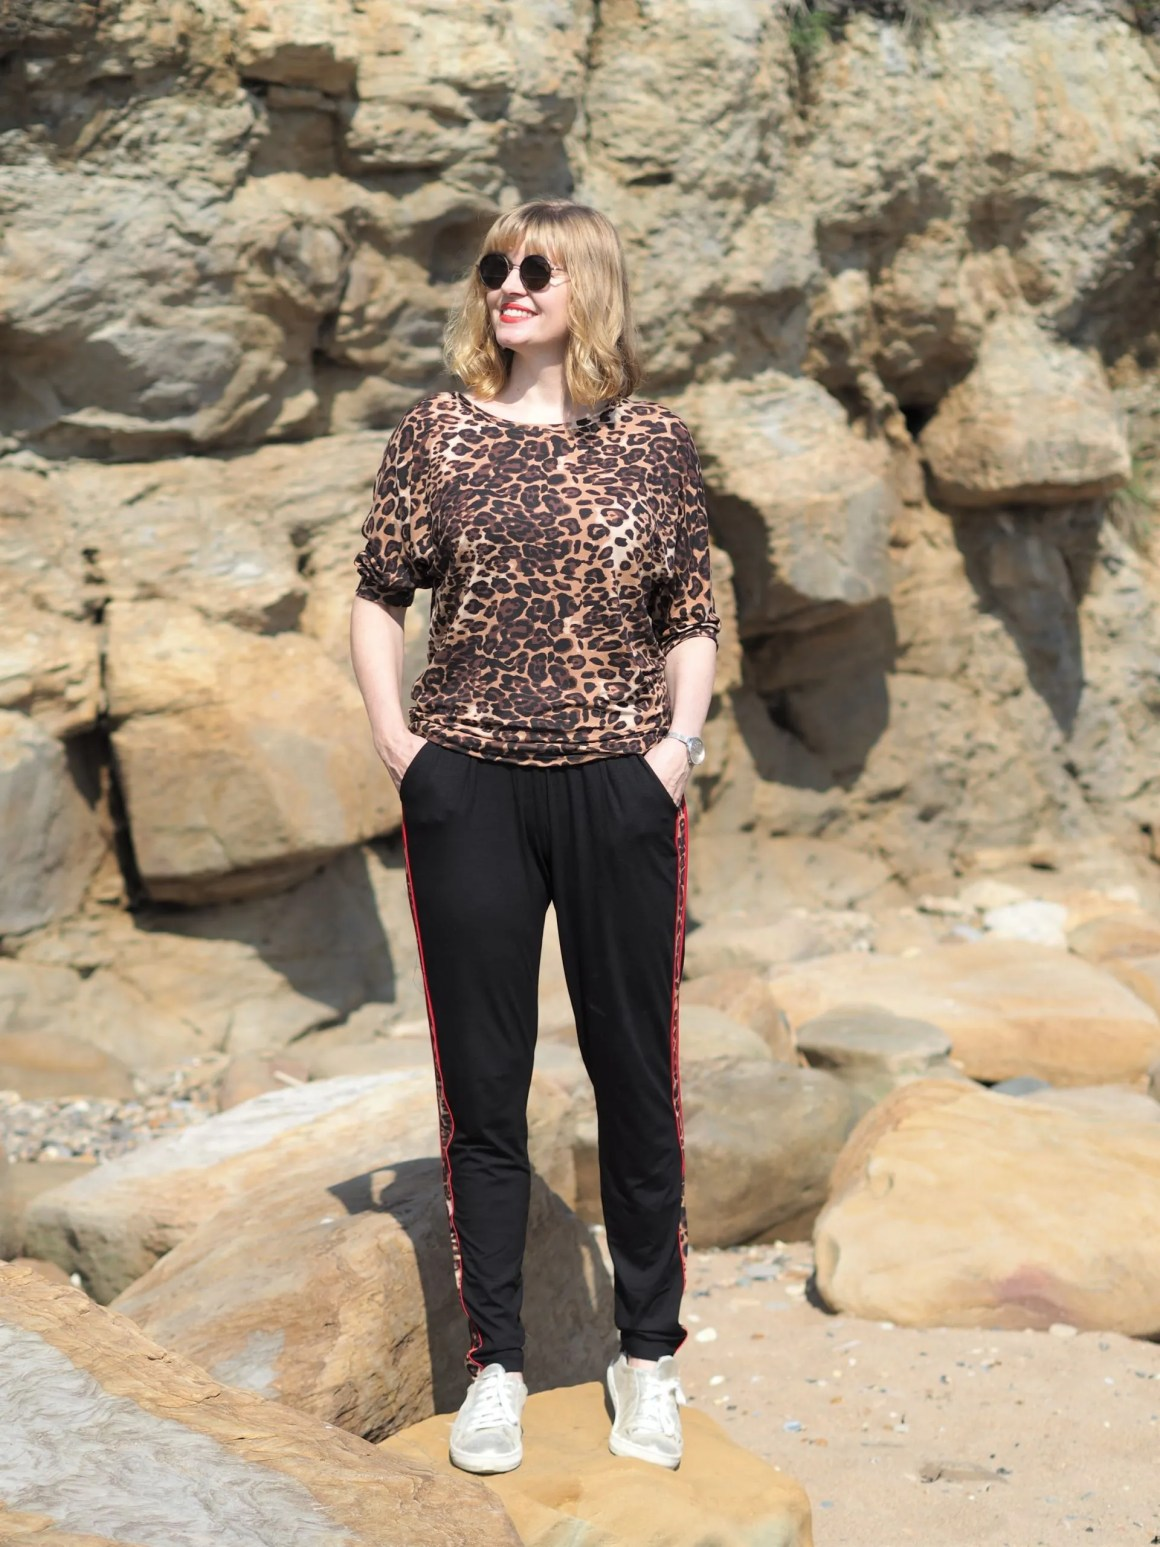 Ethical leopard print activewear